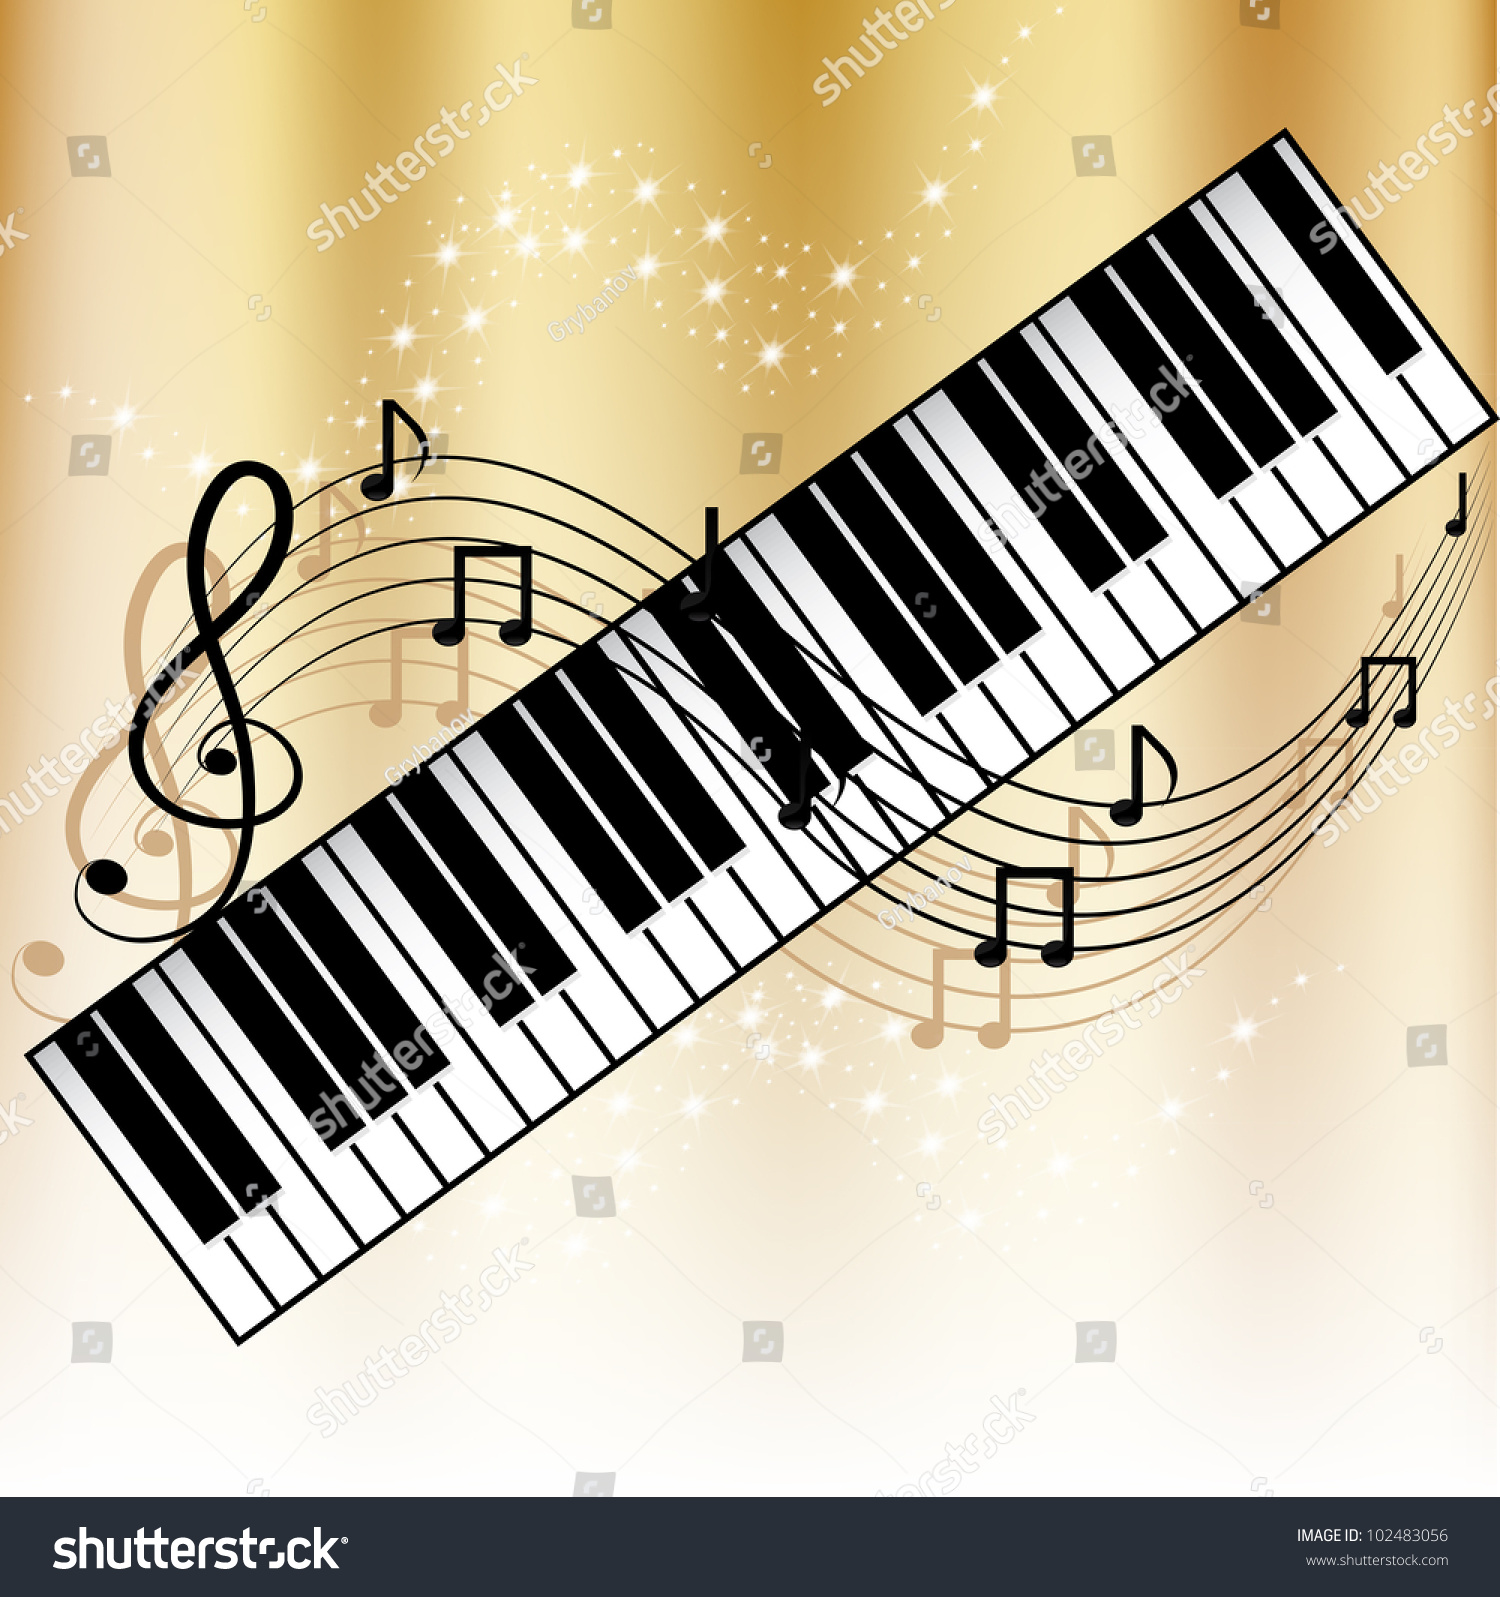 Piano Background Music: Background With Music Notes And Piano Stock Vector